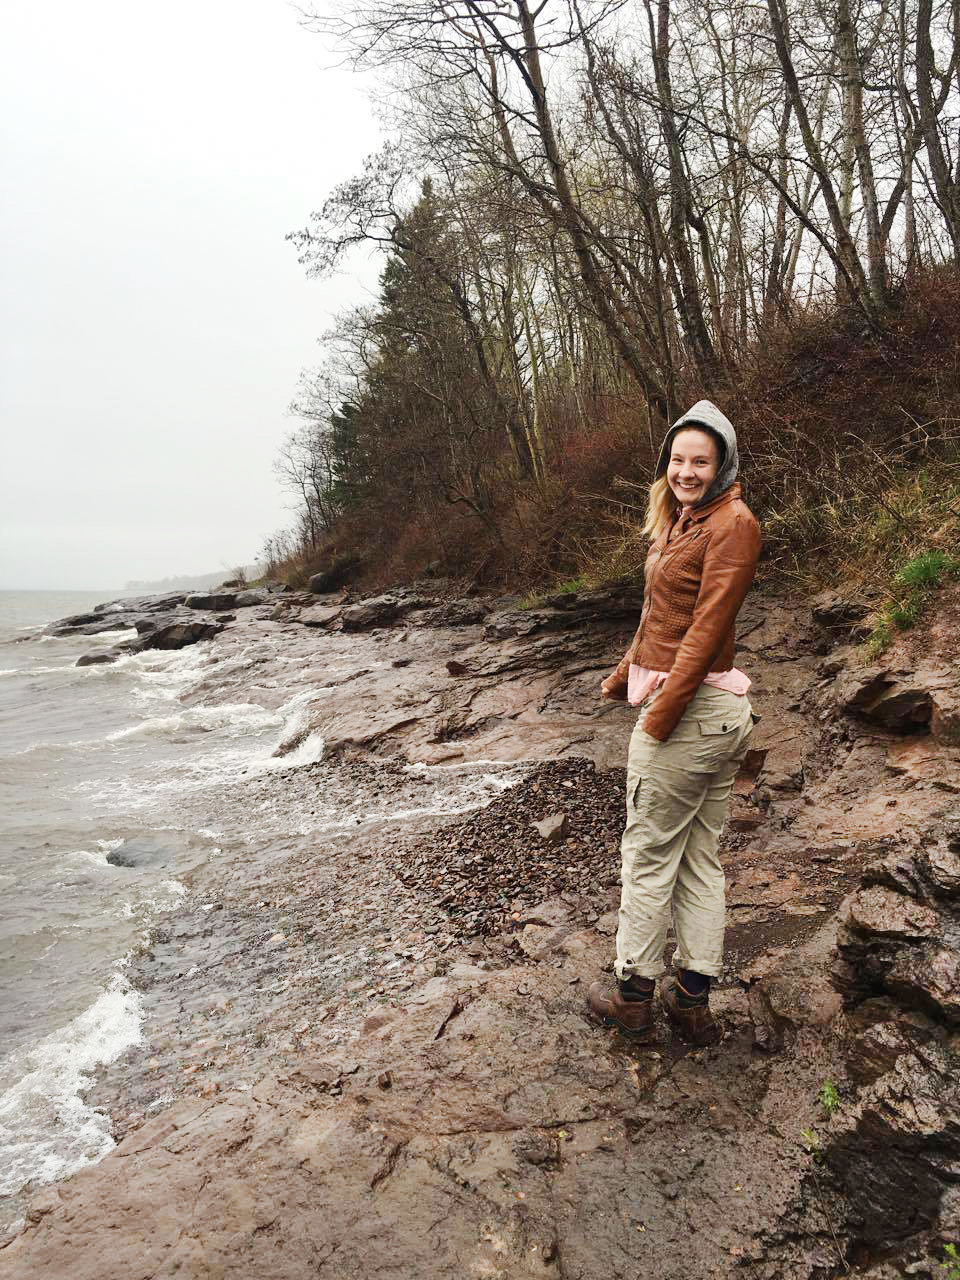 Hiking the Shores of Lake Superior